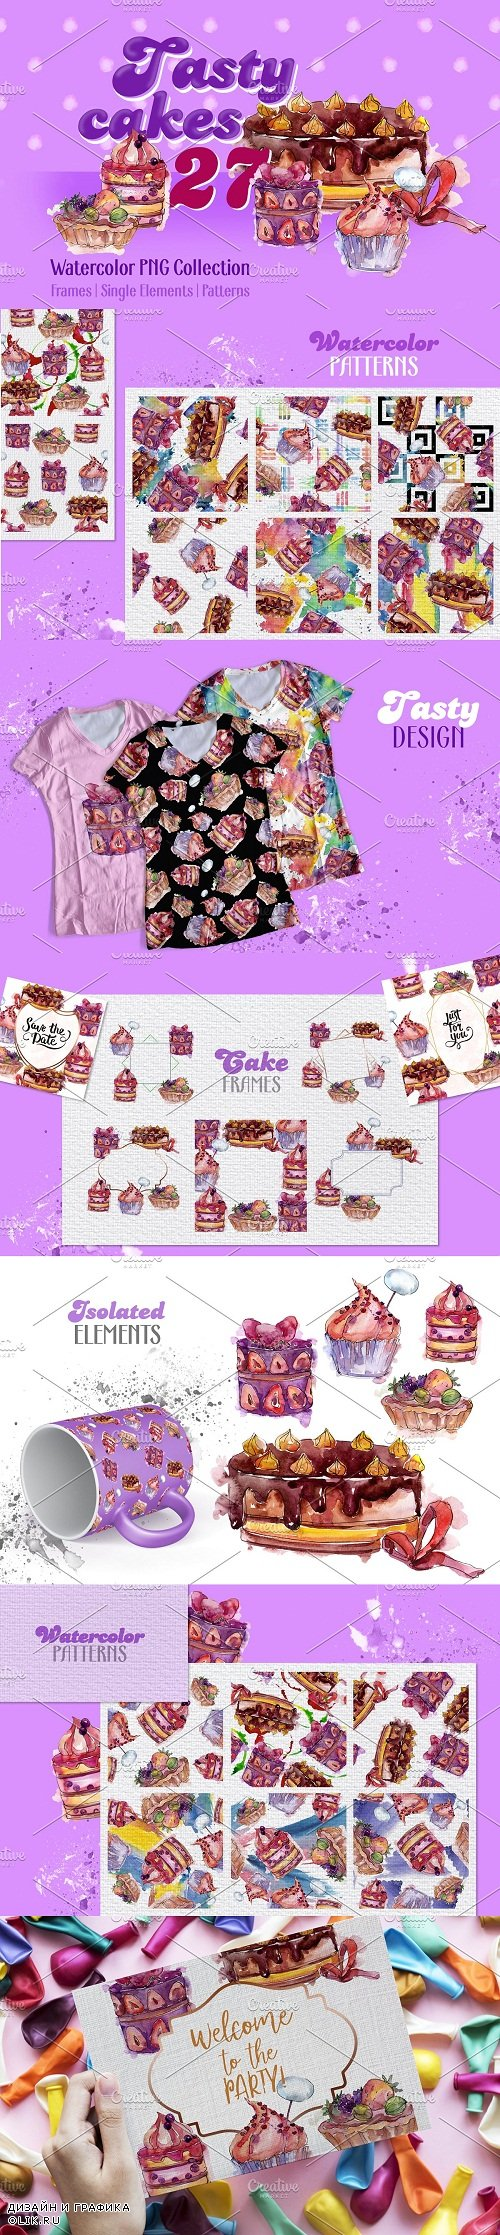 Tasty cakes violet Watercolor png - 3739021